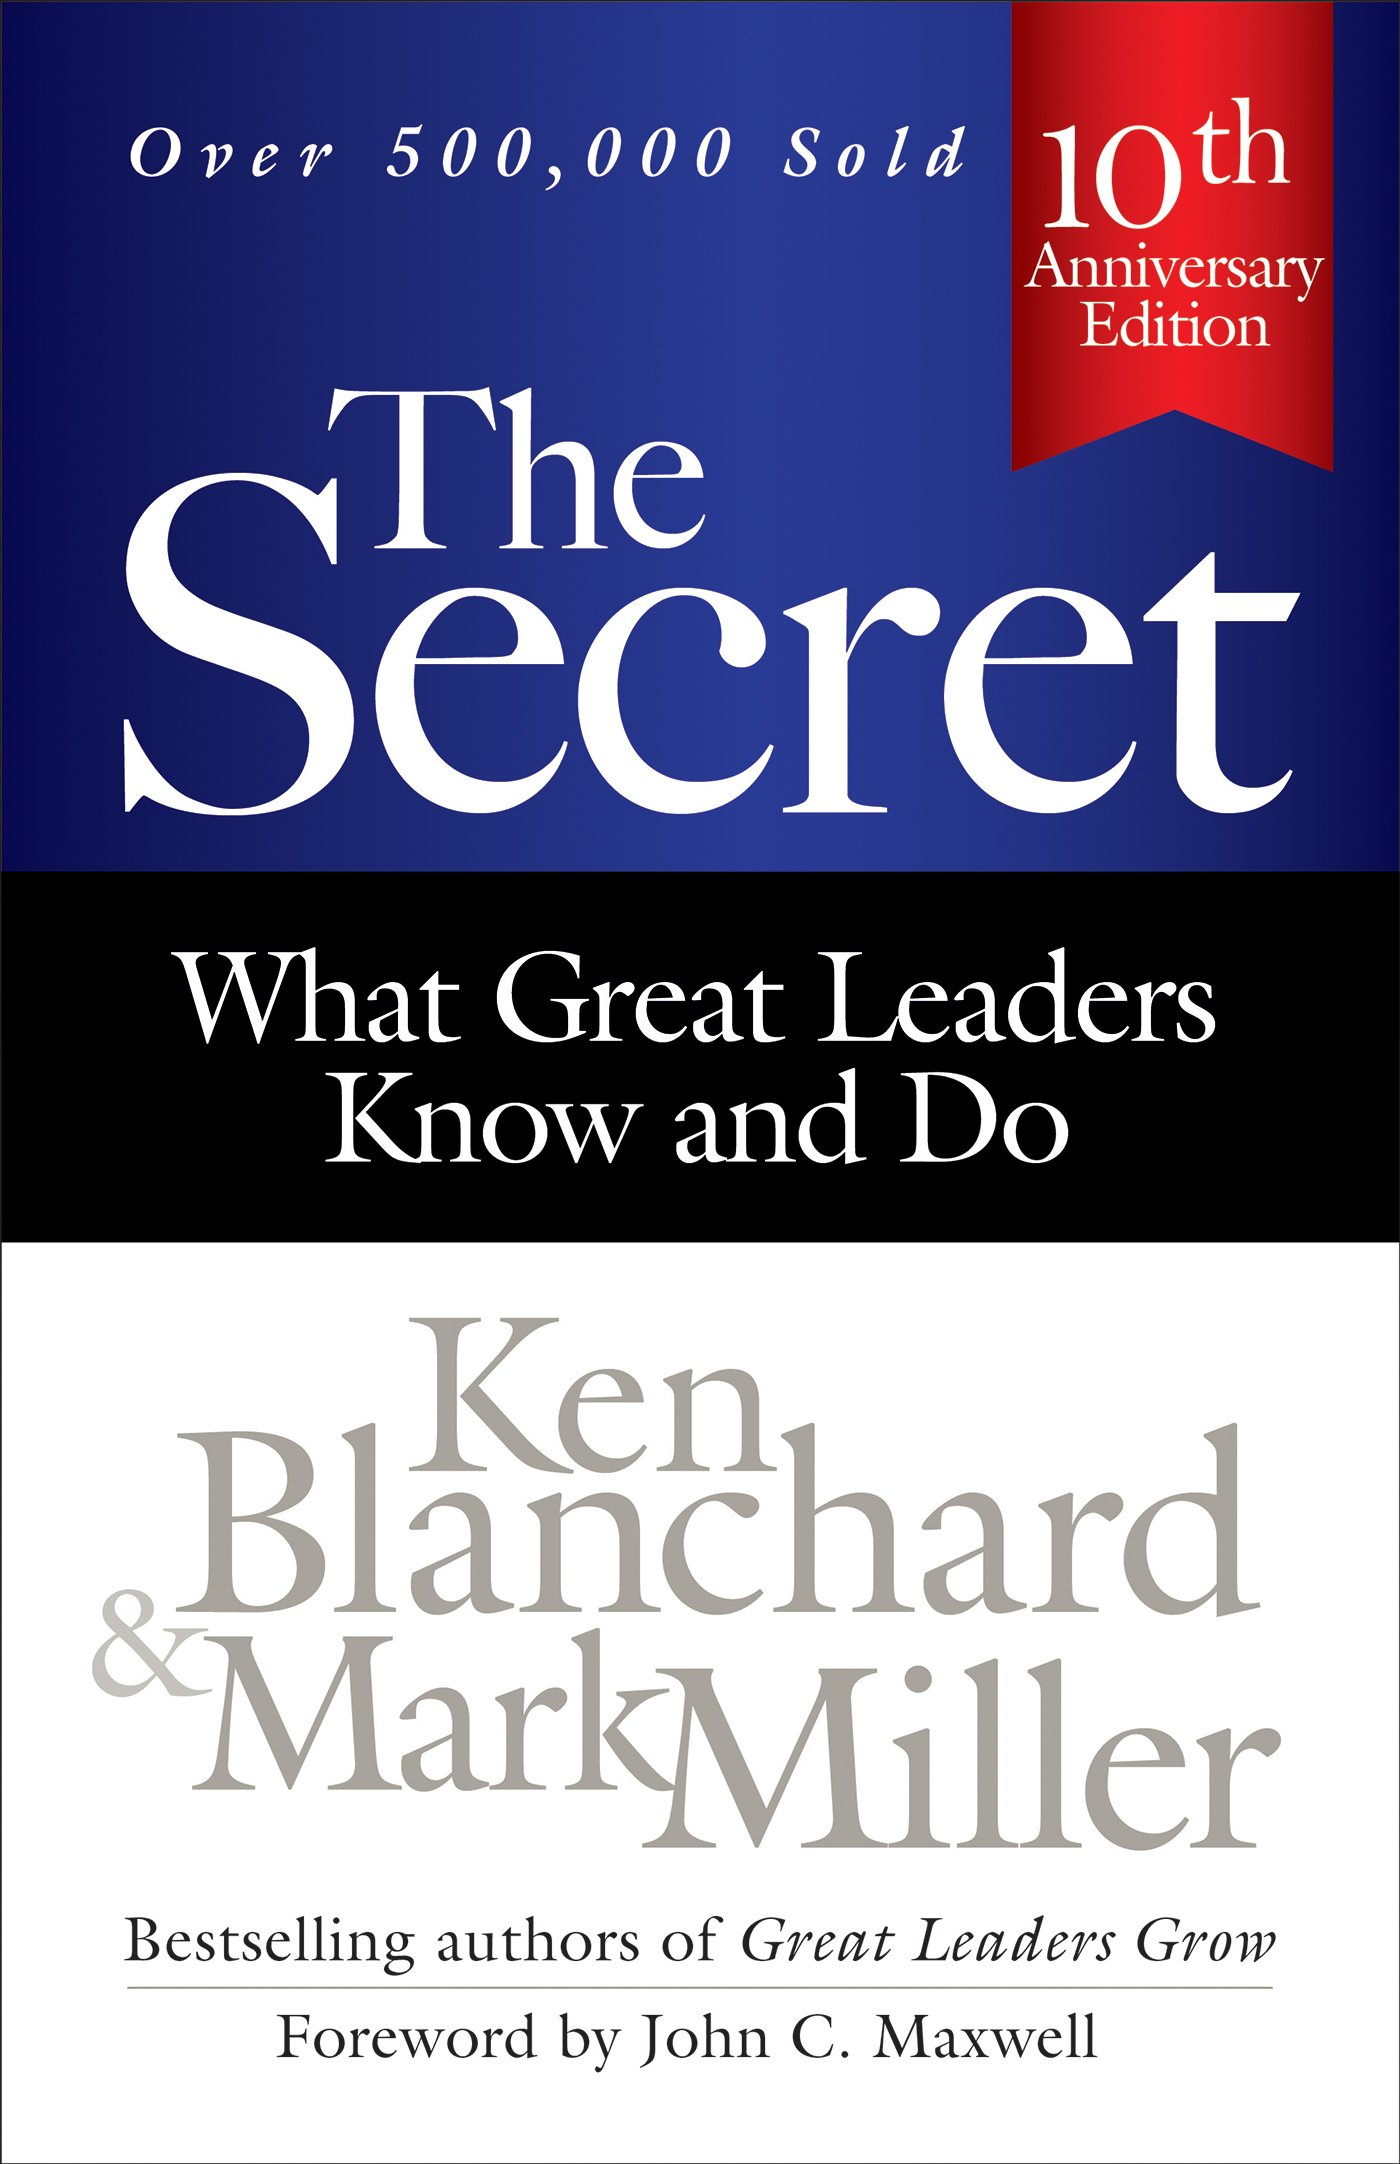 Timothy Keller Quotes 20 Quotes On Servant Leadership From The Secretken Blanchard